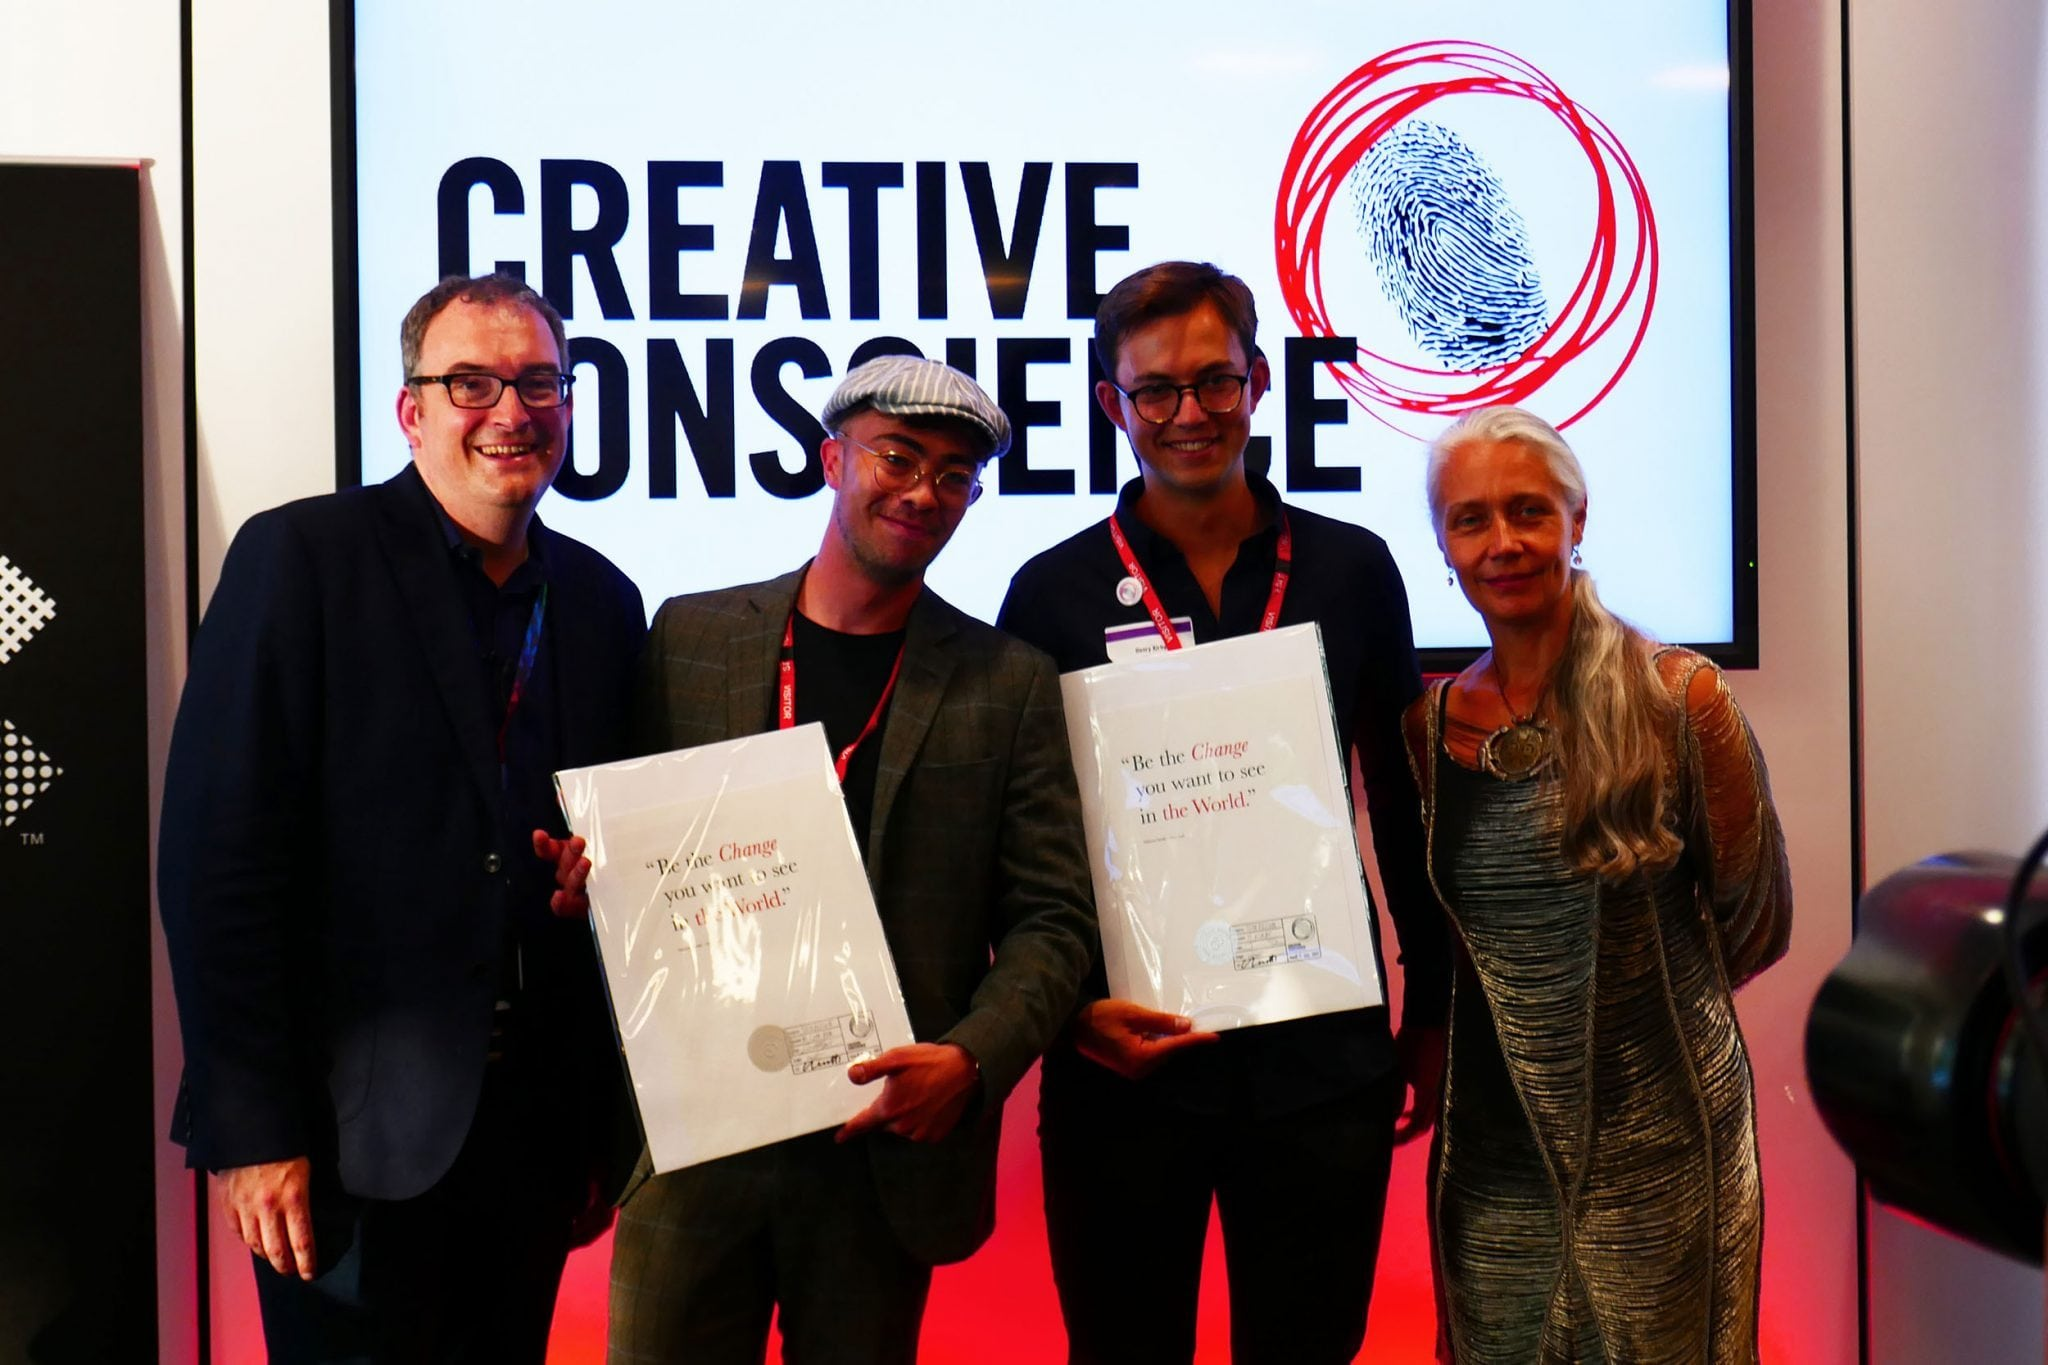 Graphic Design Student Winners in Creative Conscience Awards, 2017 - Arts University Bournemouth